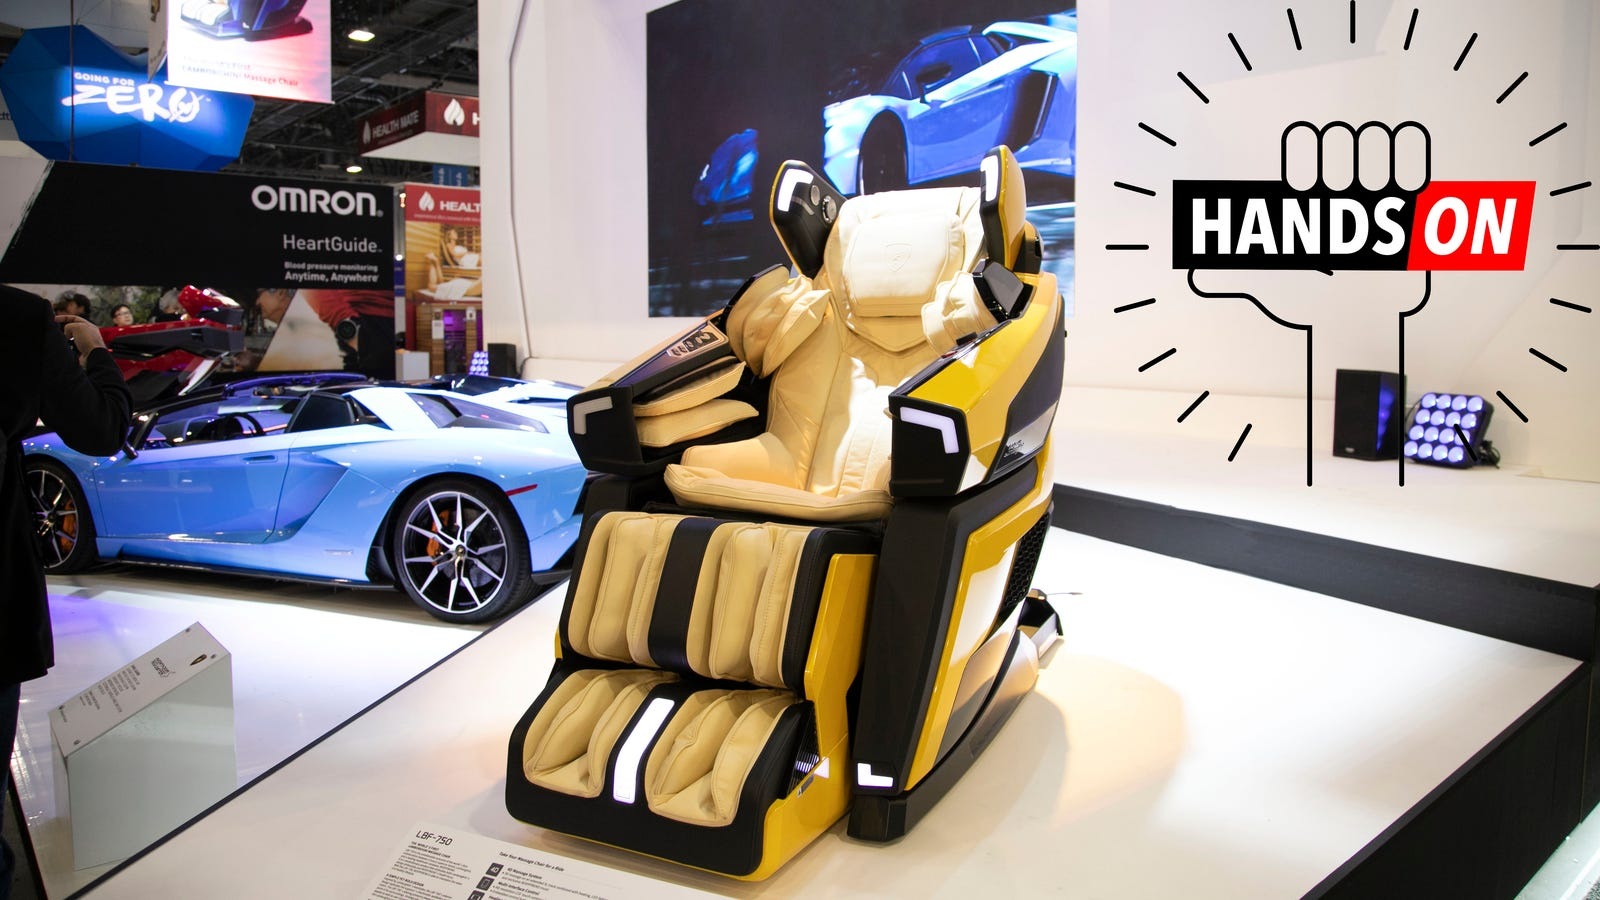 Sitting In This Lamborghini Massage Chair Was Like Having Bad Sex With Optimus Prime